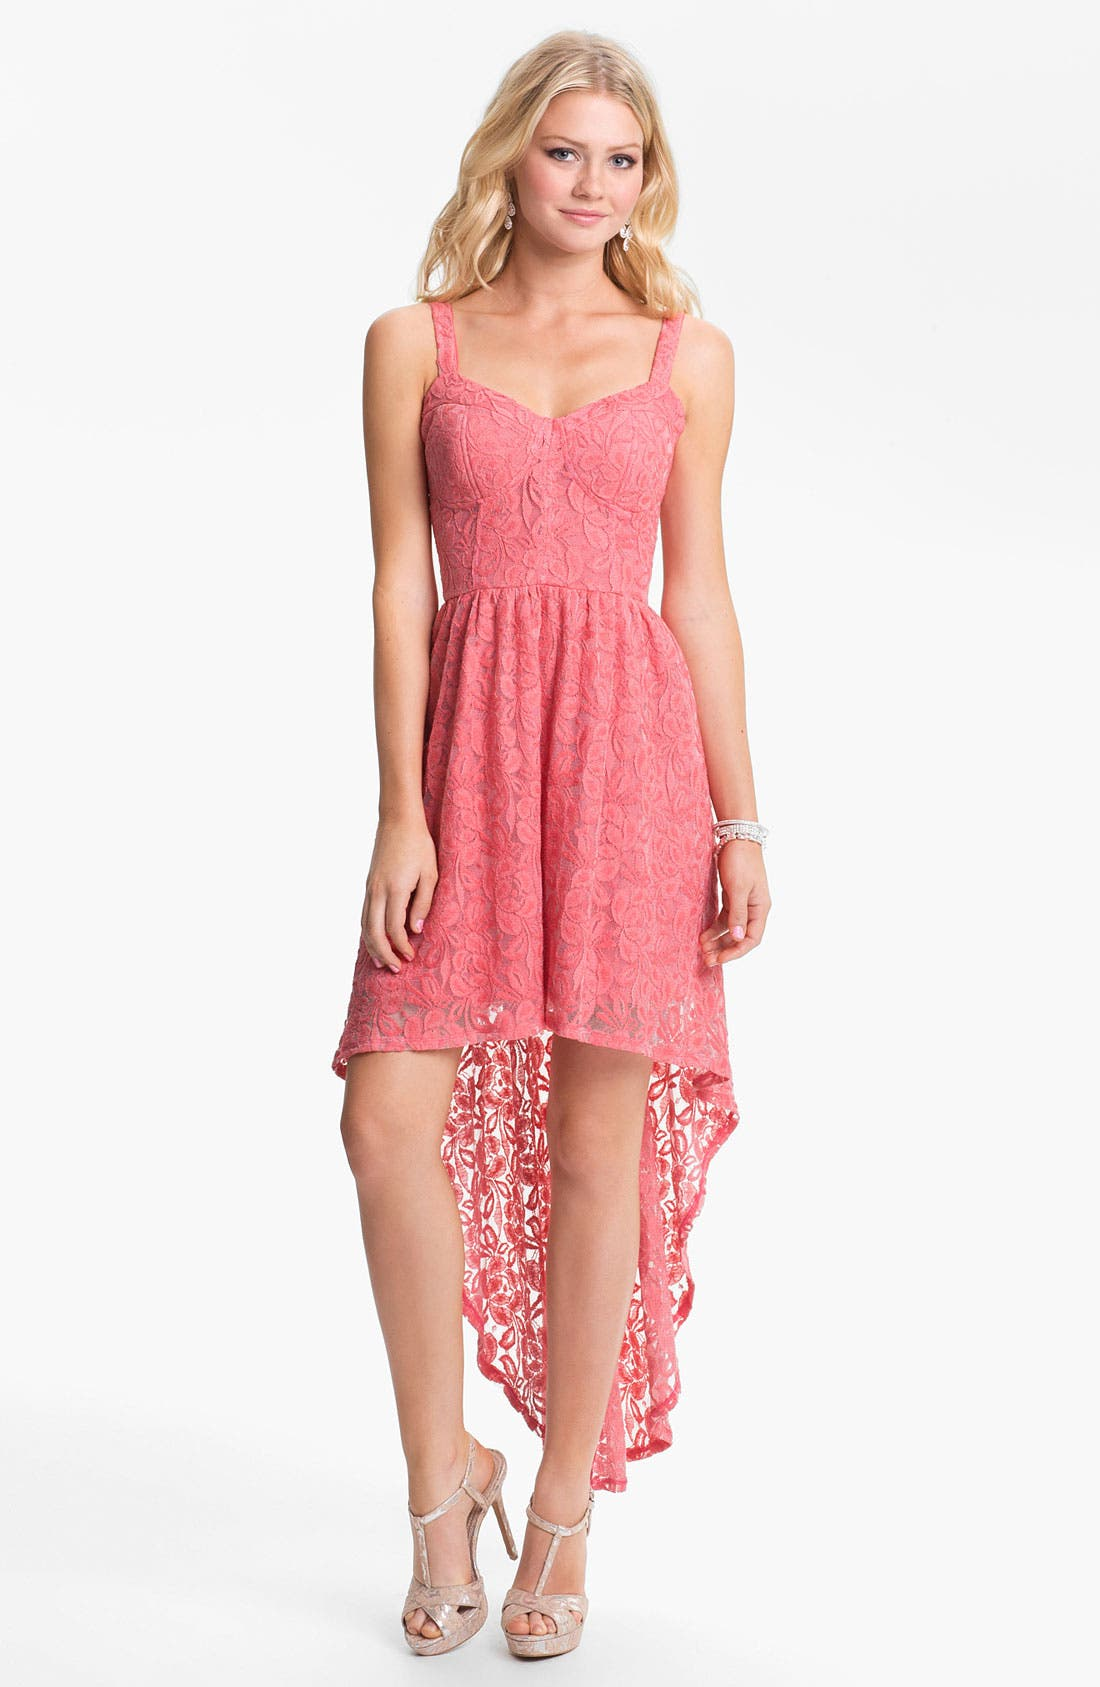 Alternate Image 1 Selected - Fire High/Low Lace Bustier Dress (Juniors)